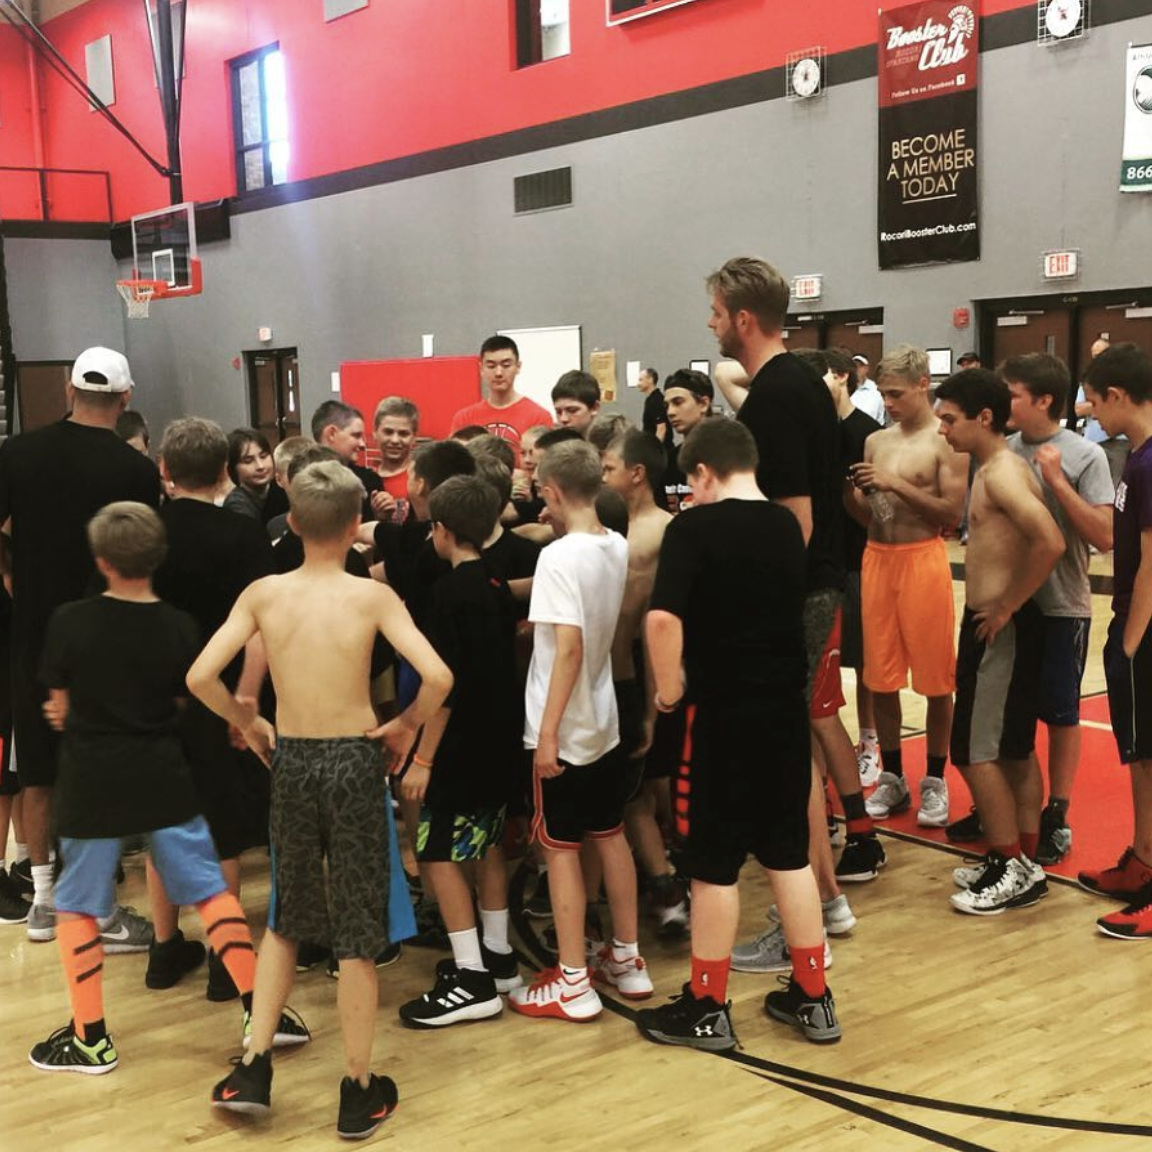 Justin+Stommes+Basketball+Youth+Training+Camp+Minnesota+and+Los+Angeles